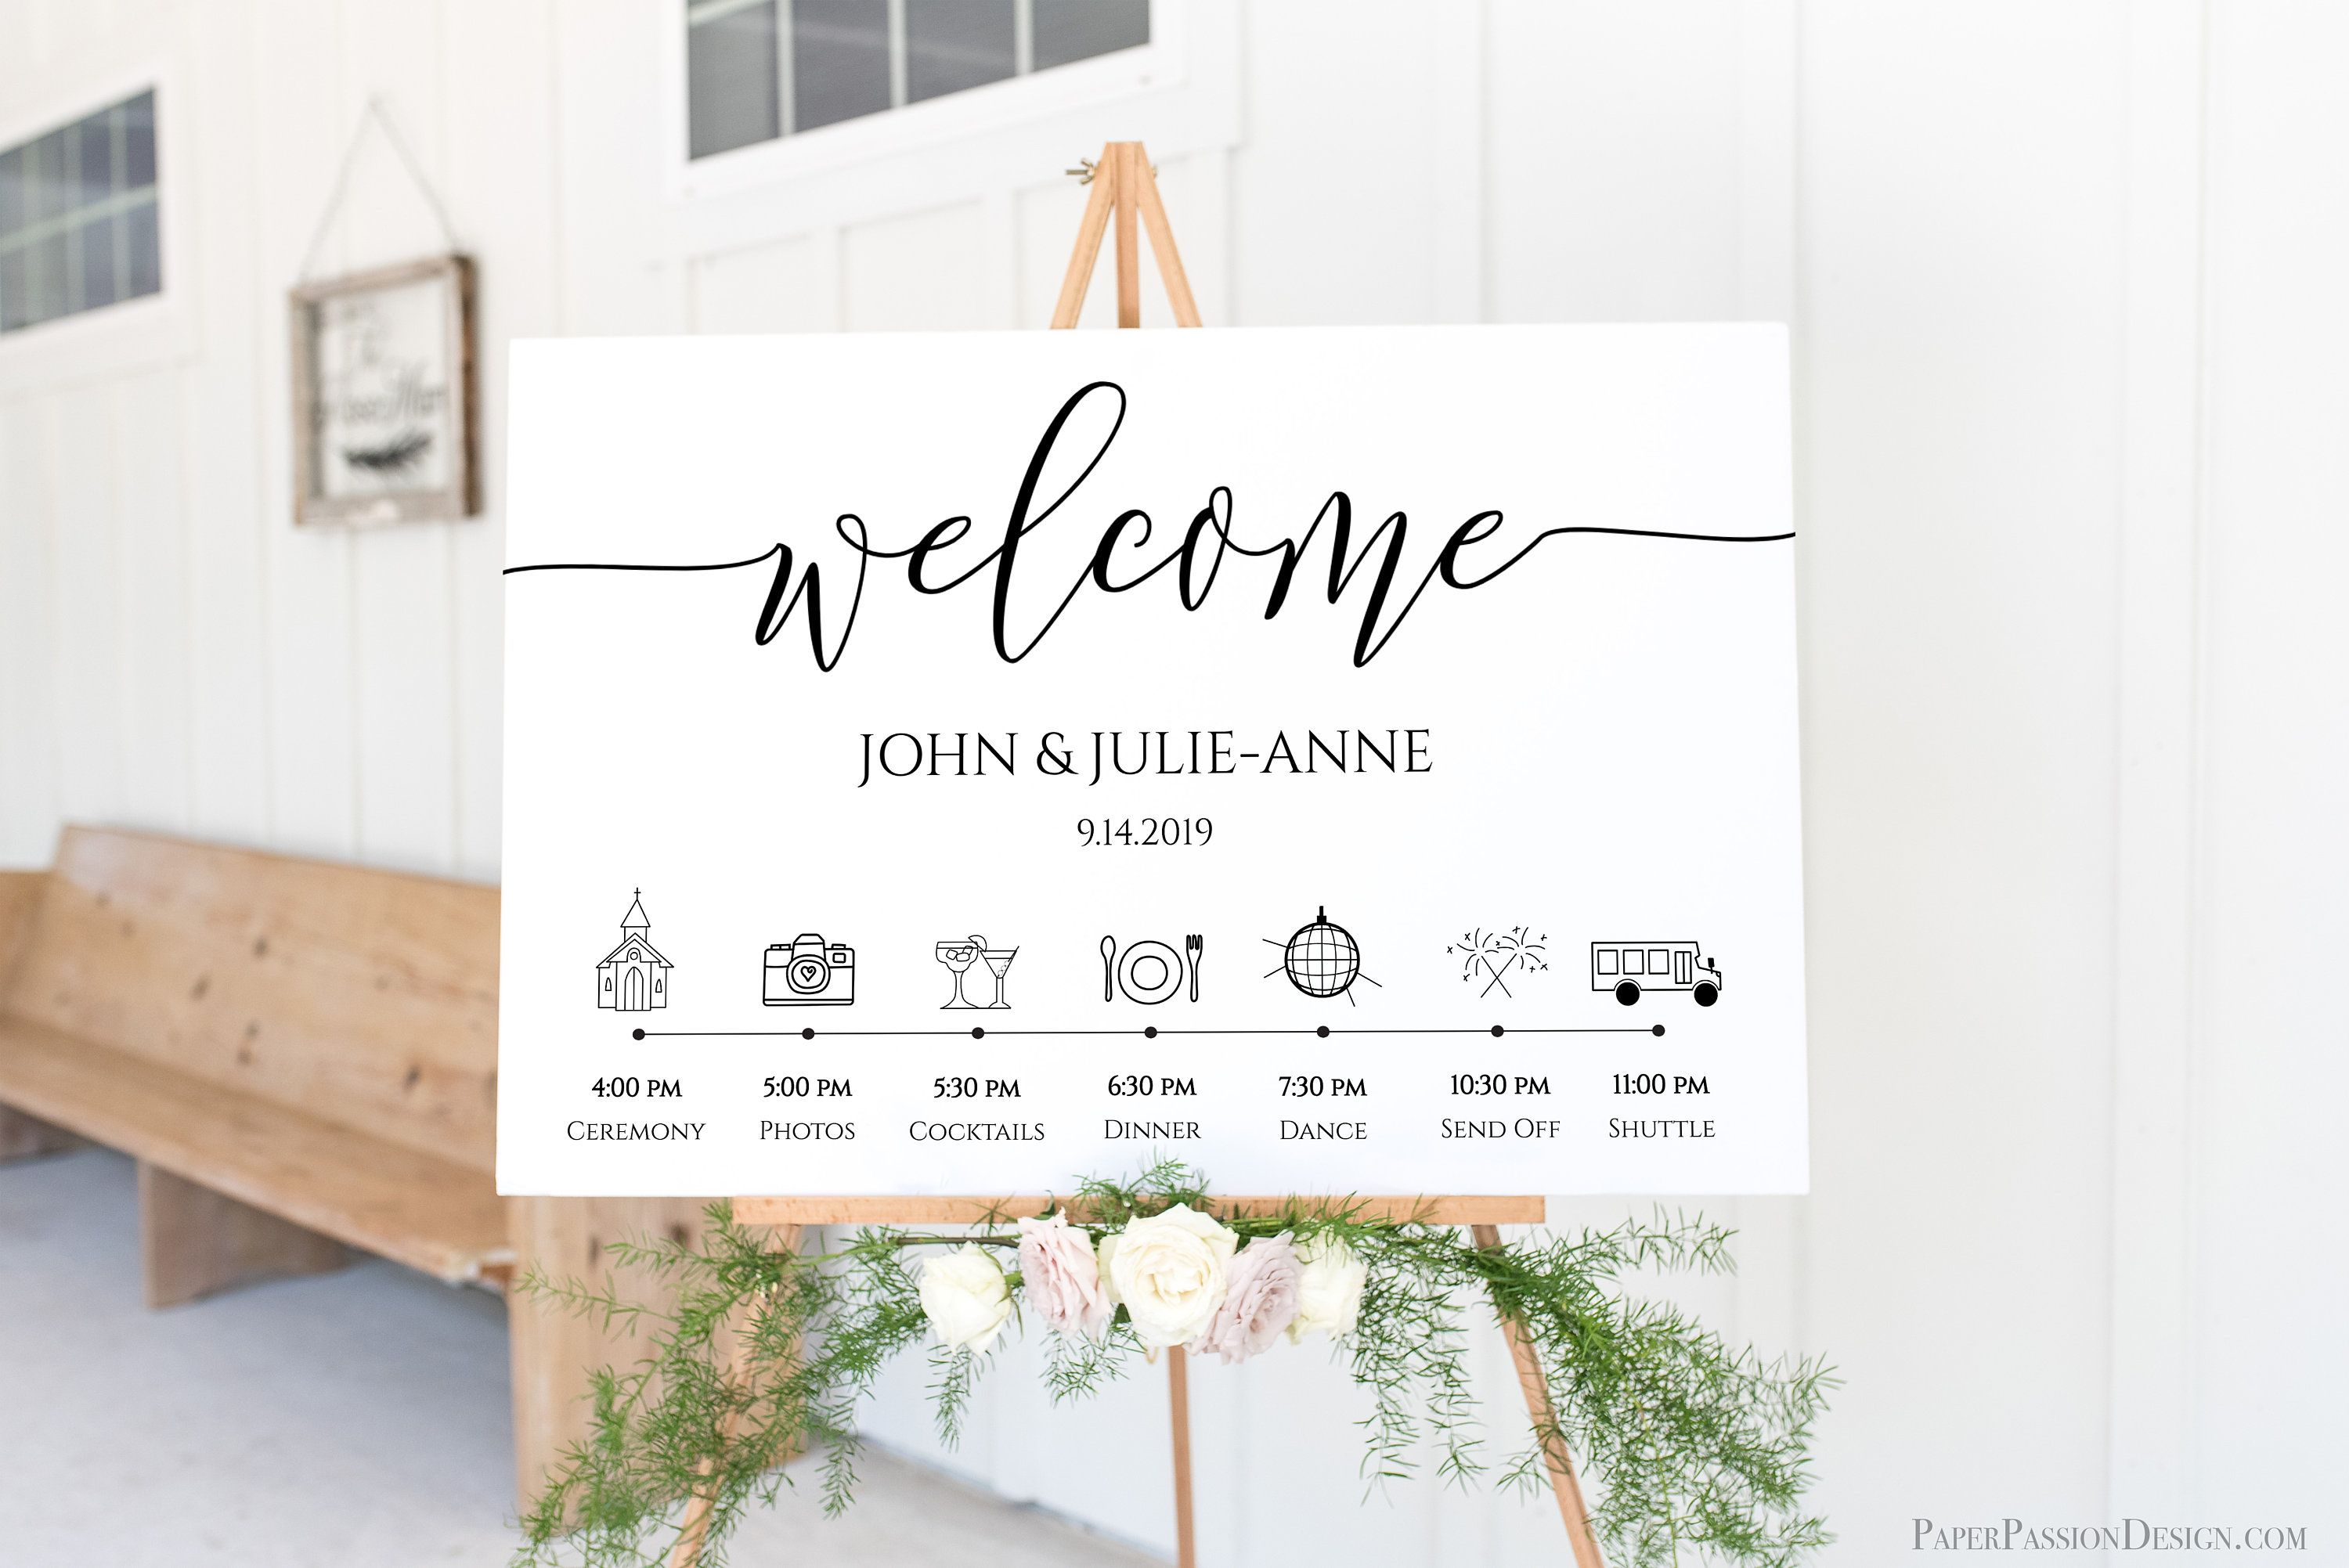 Wedding Welcome Timeline Sign Minimalist Printable Timeline Etsy In 2020 Wedding Day Schedule Wedding Welcome Event Card